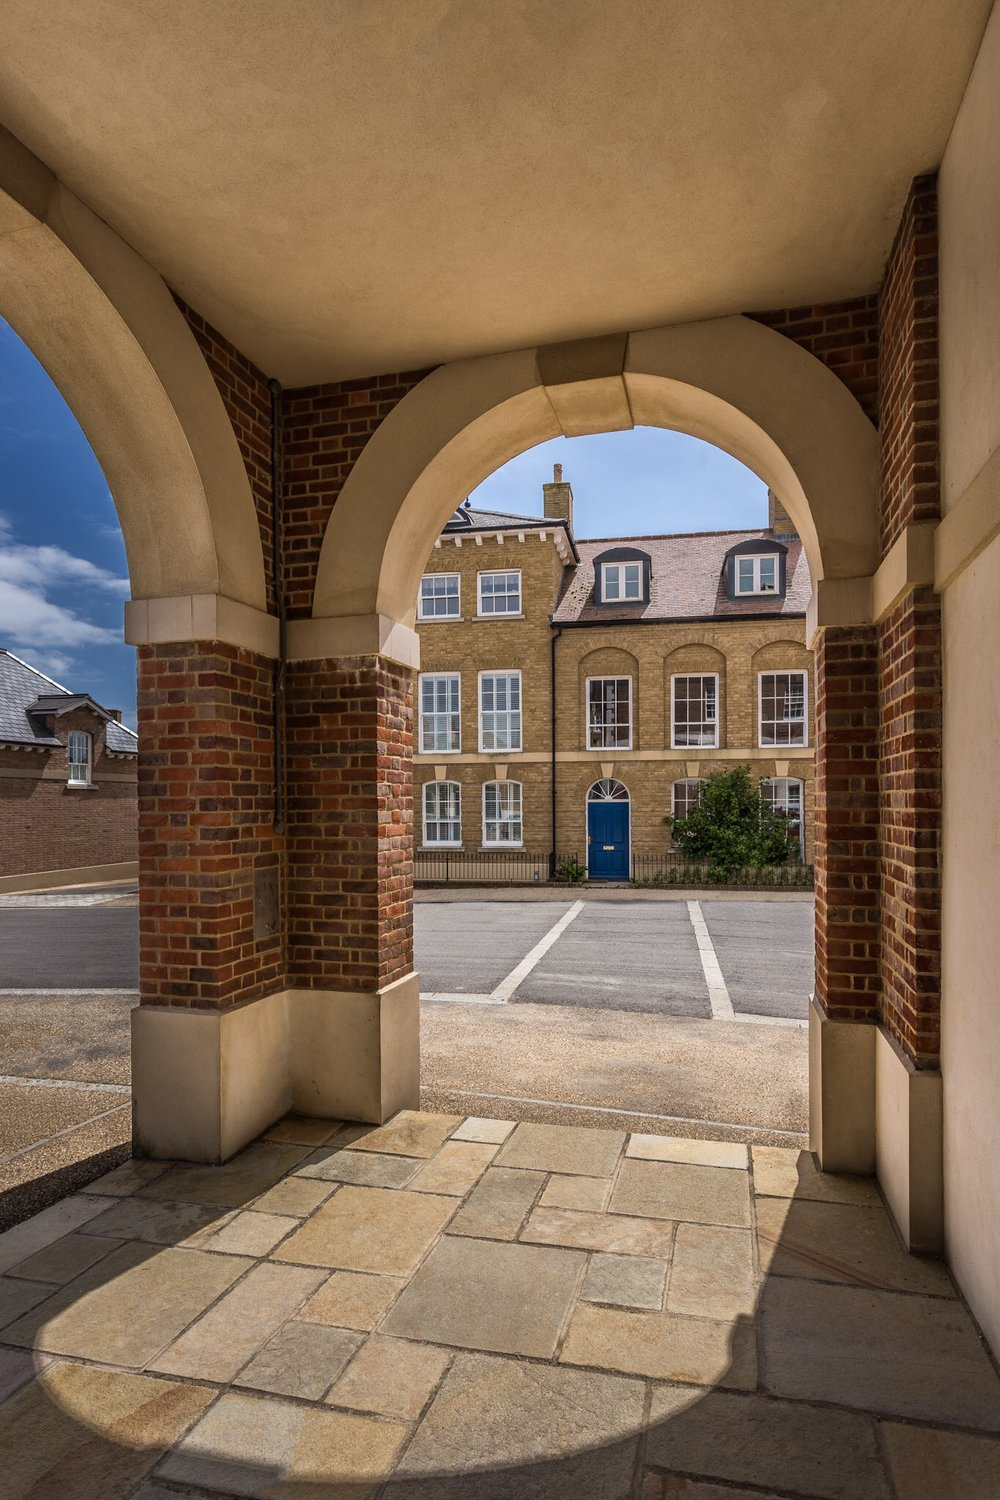 More architectural photography in Poundbury for John Simpson Architects